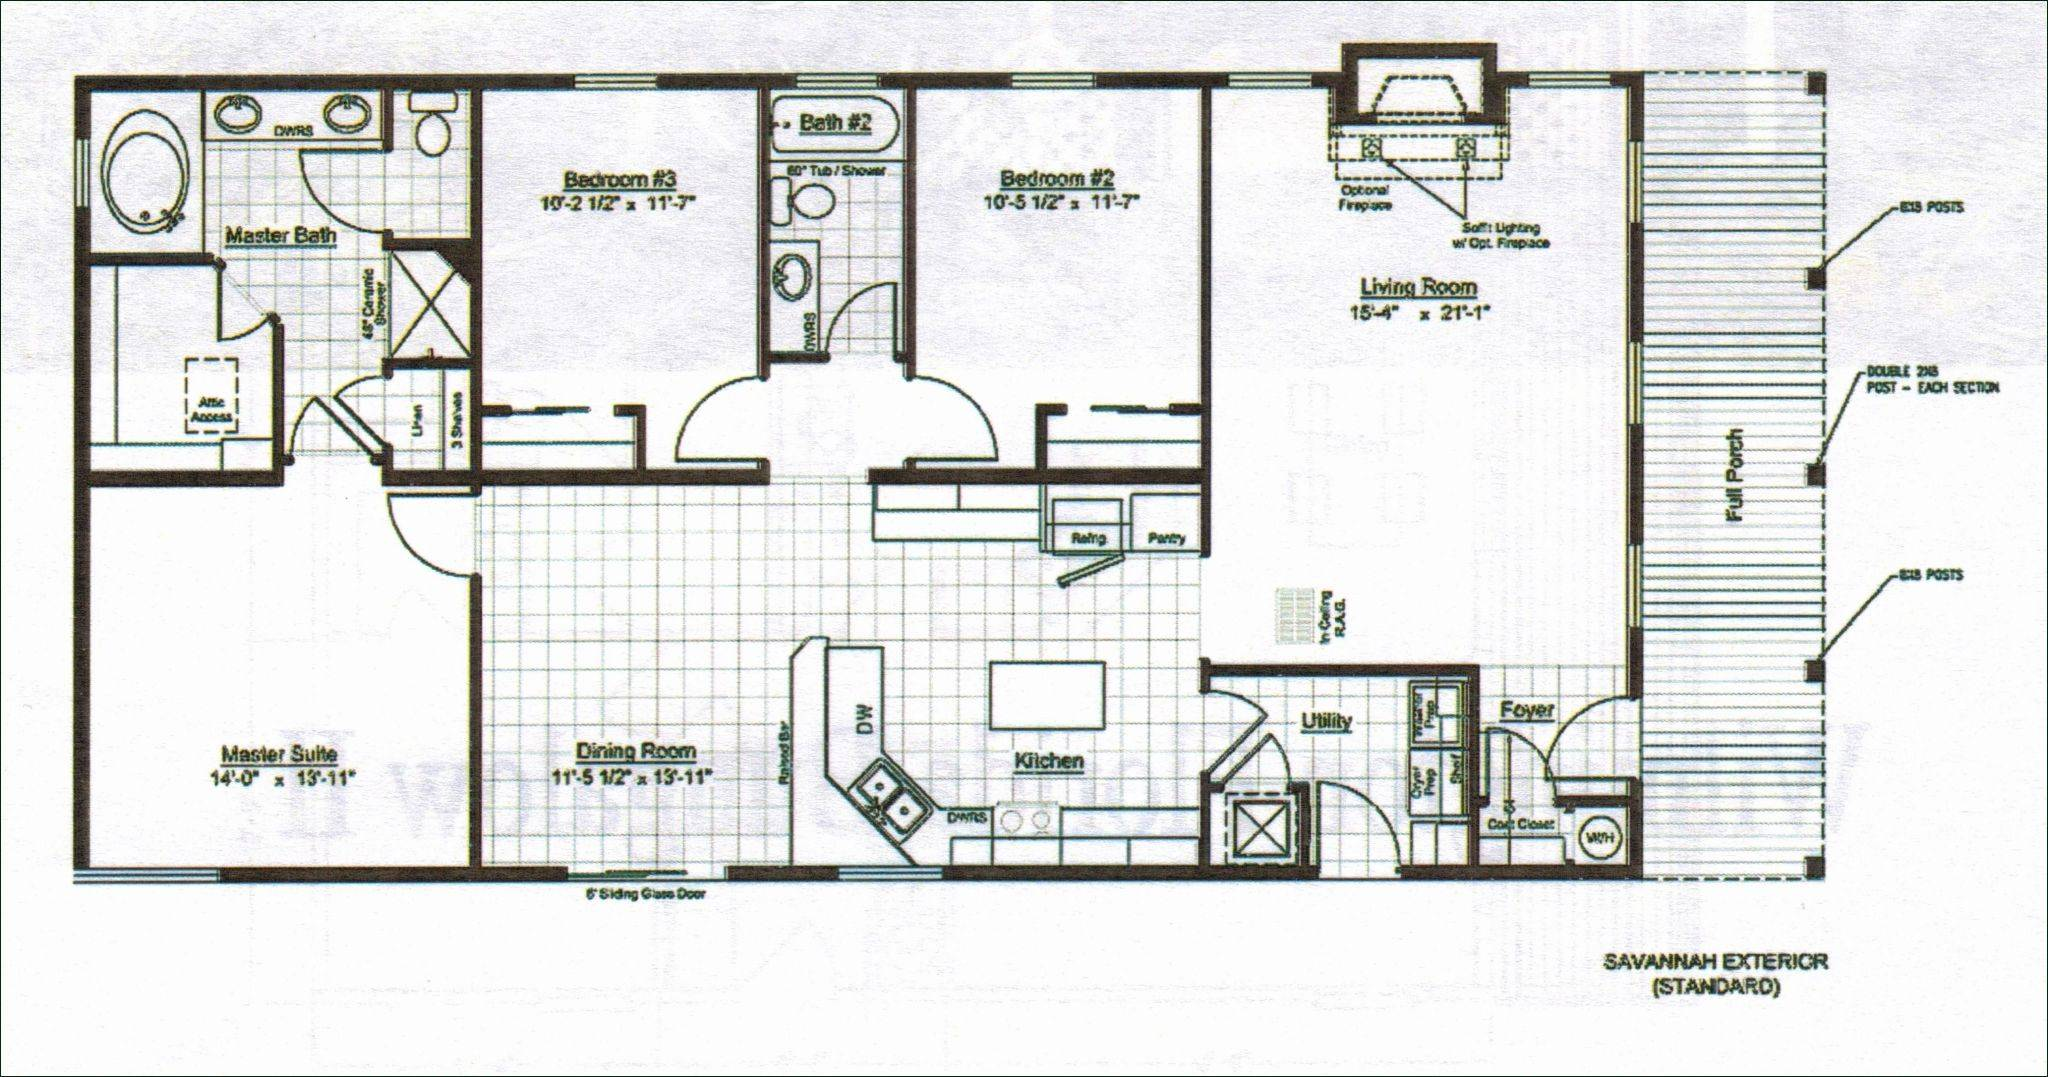 kitchen floor plan design along with fresh small open house plans lovely simple kitchen floor plans 0d of kitchen floor plan design